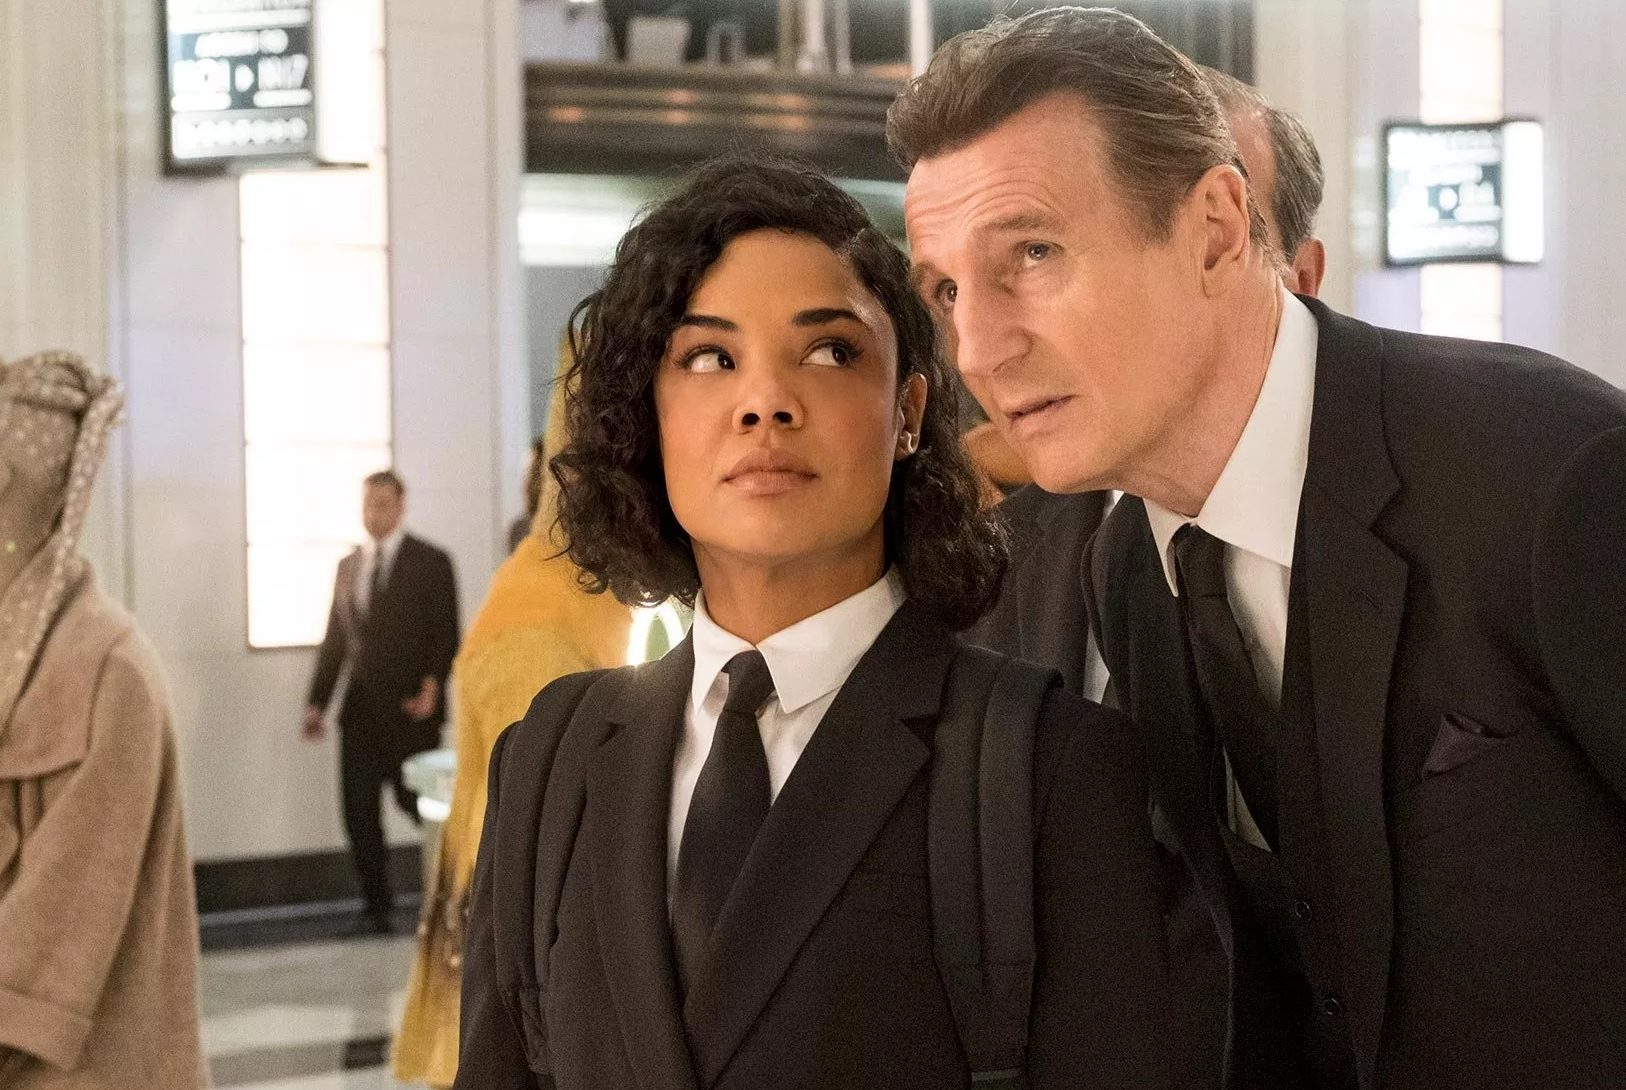 Men In Black 4 reshoots could cost over $10 million as fans call on Liam Neeson to be recast